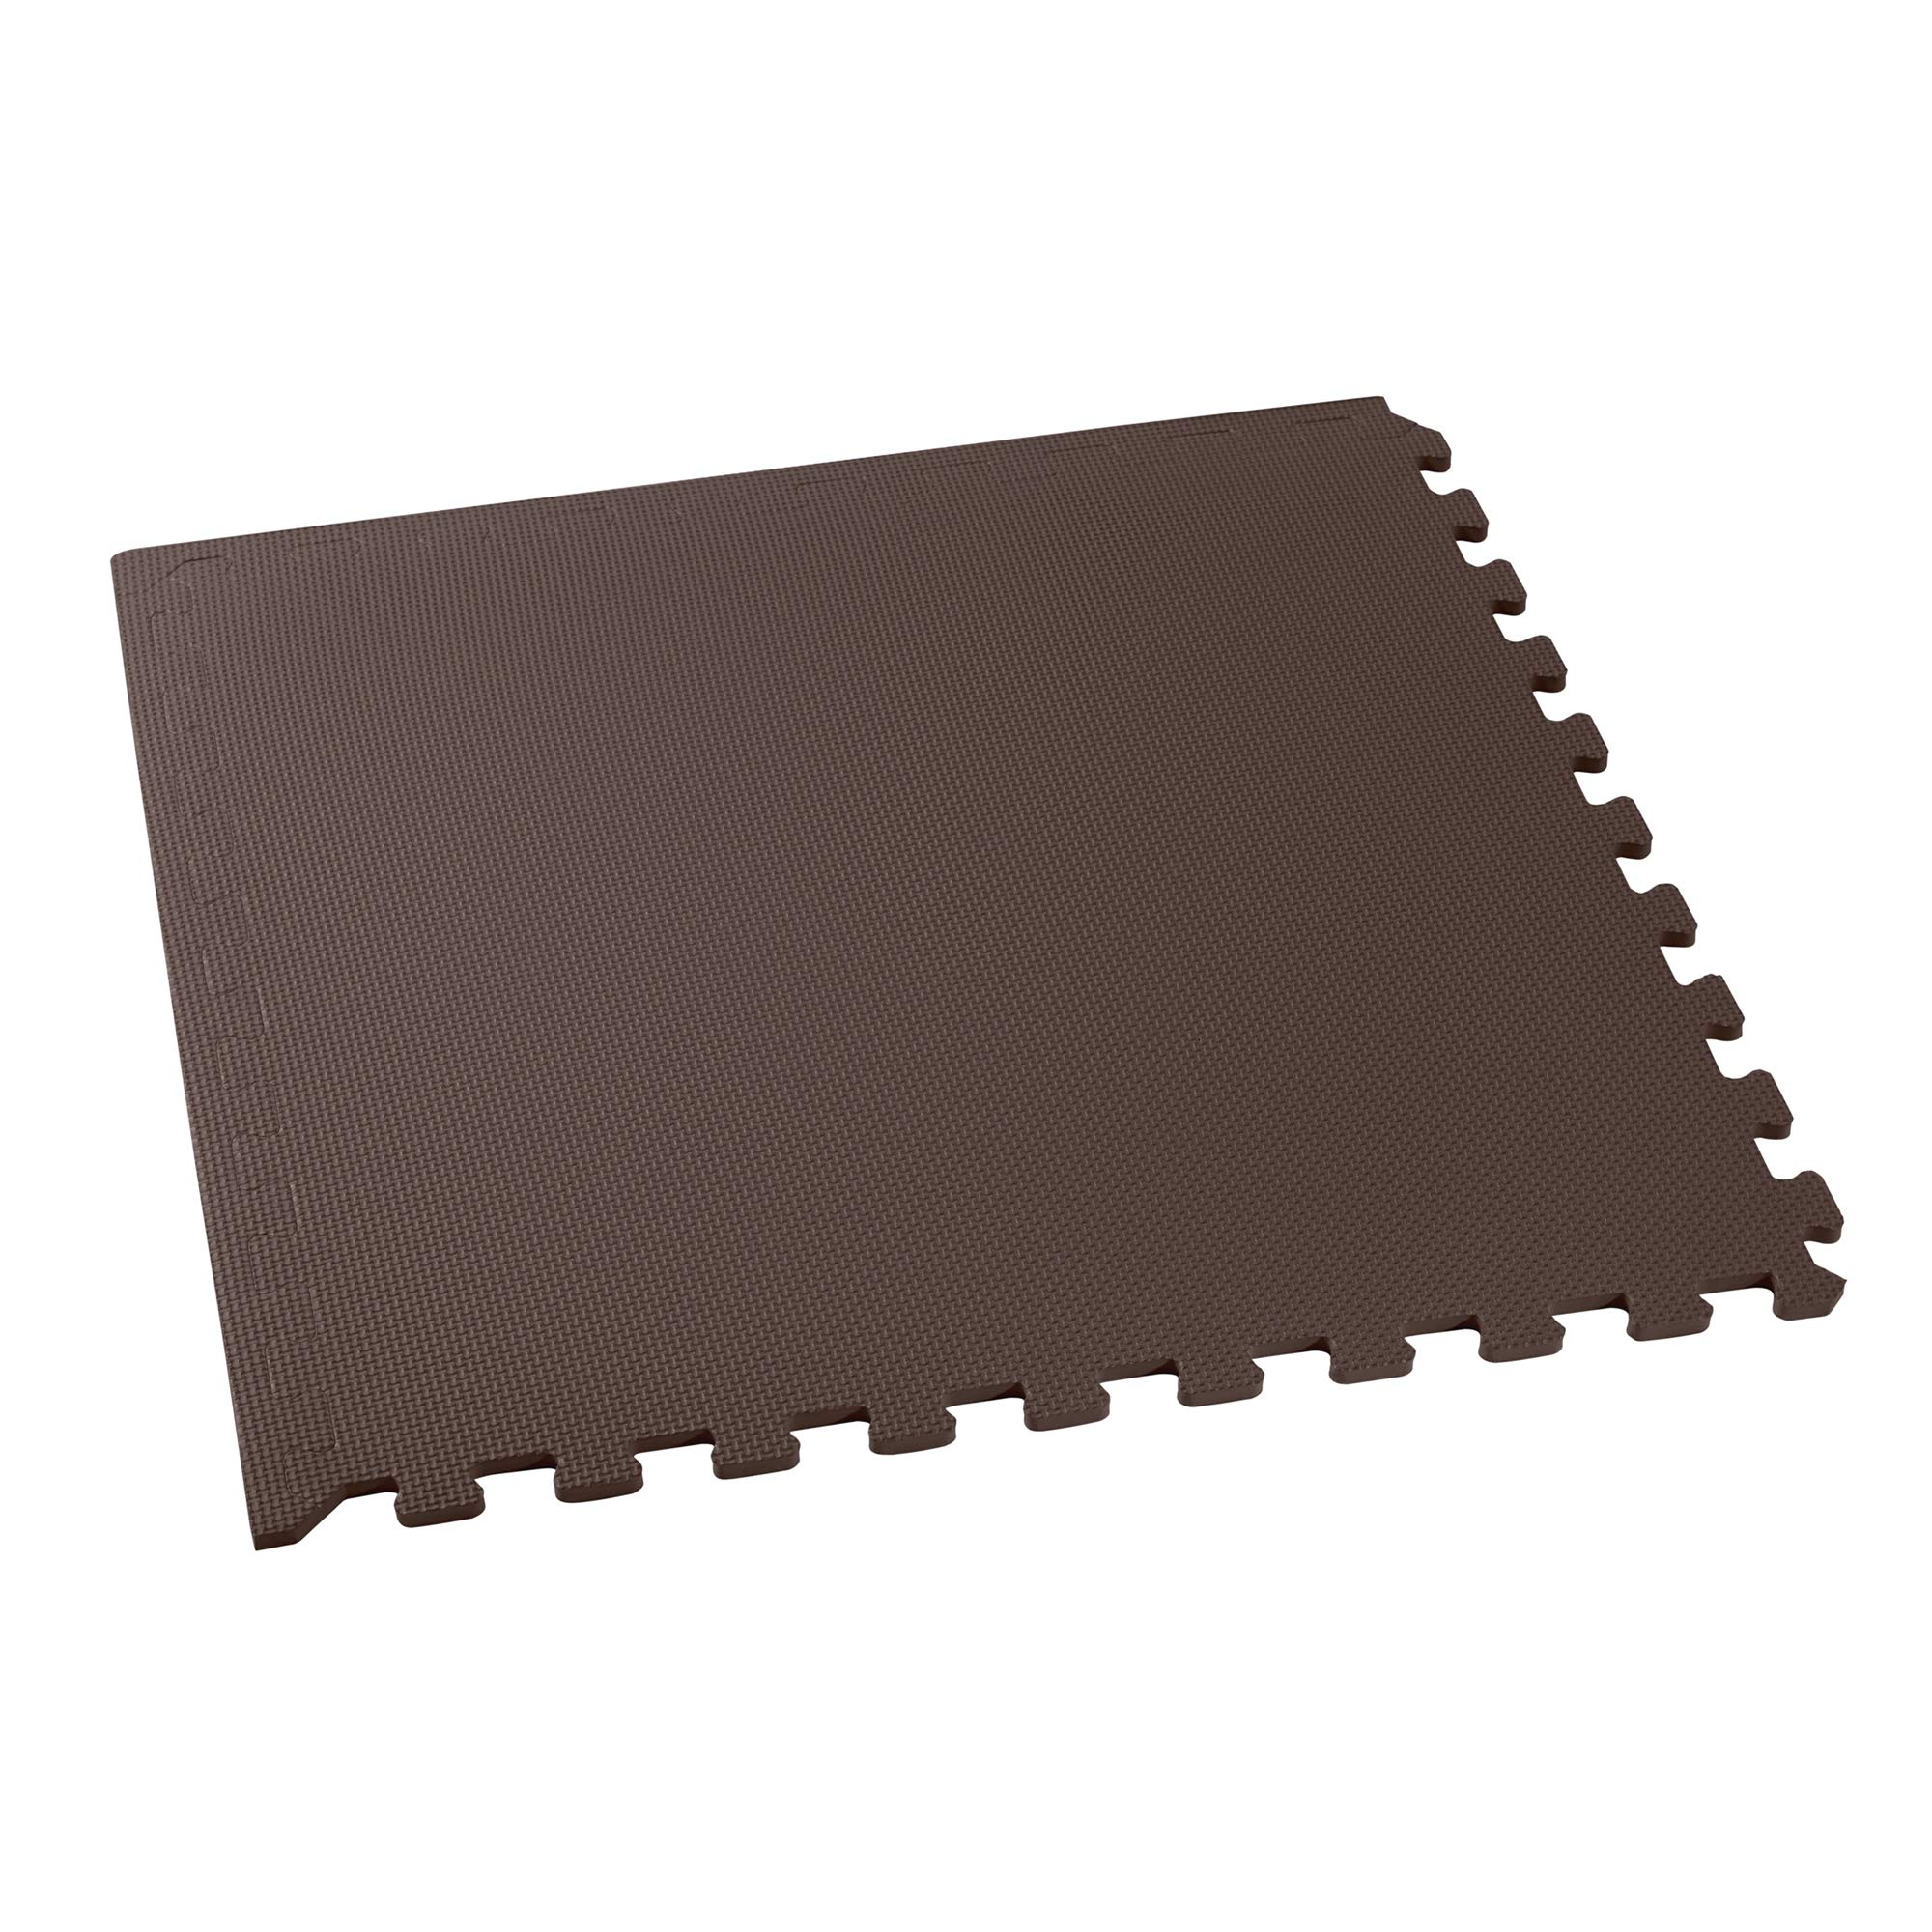 We Sell Mats Multipurpose Exercise Floor Mat with EVA Foam, Interlocking Tiles, Anti-Fatigue, for Home or Gym, 16 Square Feet (4 Tiles), 24 x 24 x 3/8 Inches, Brown